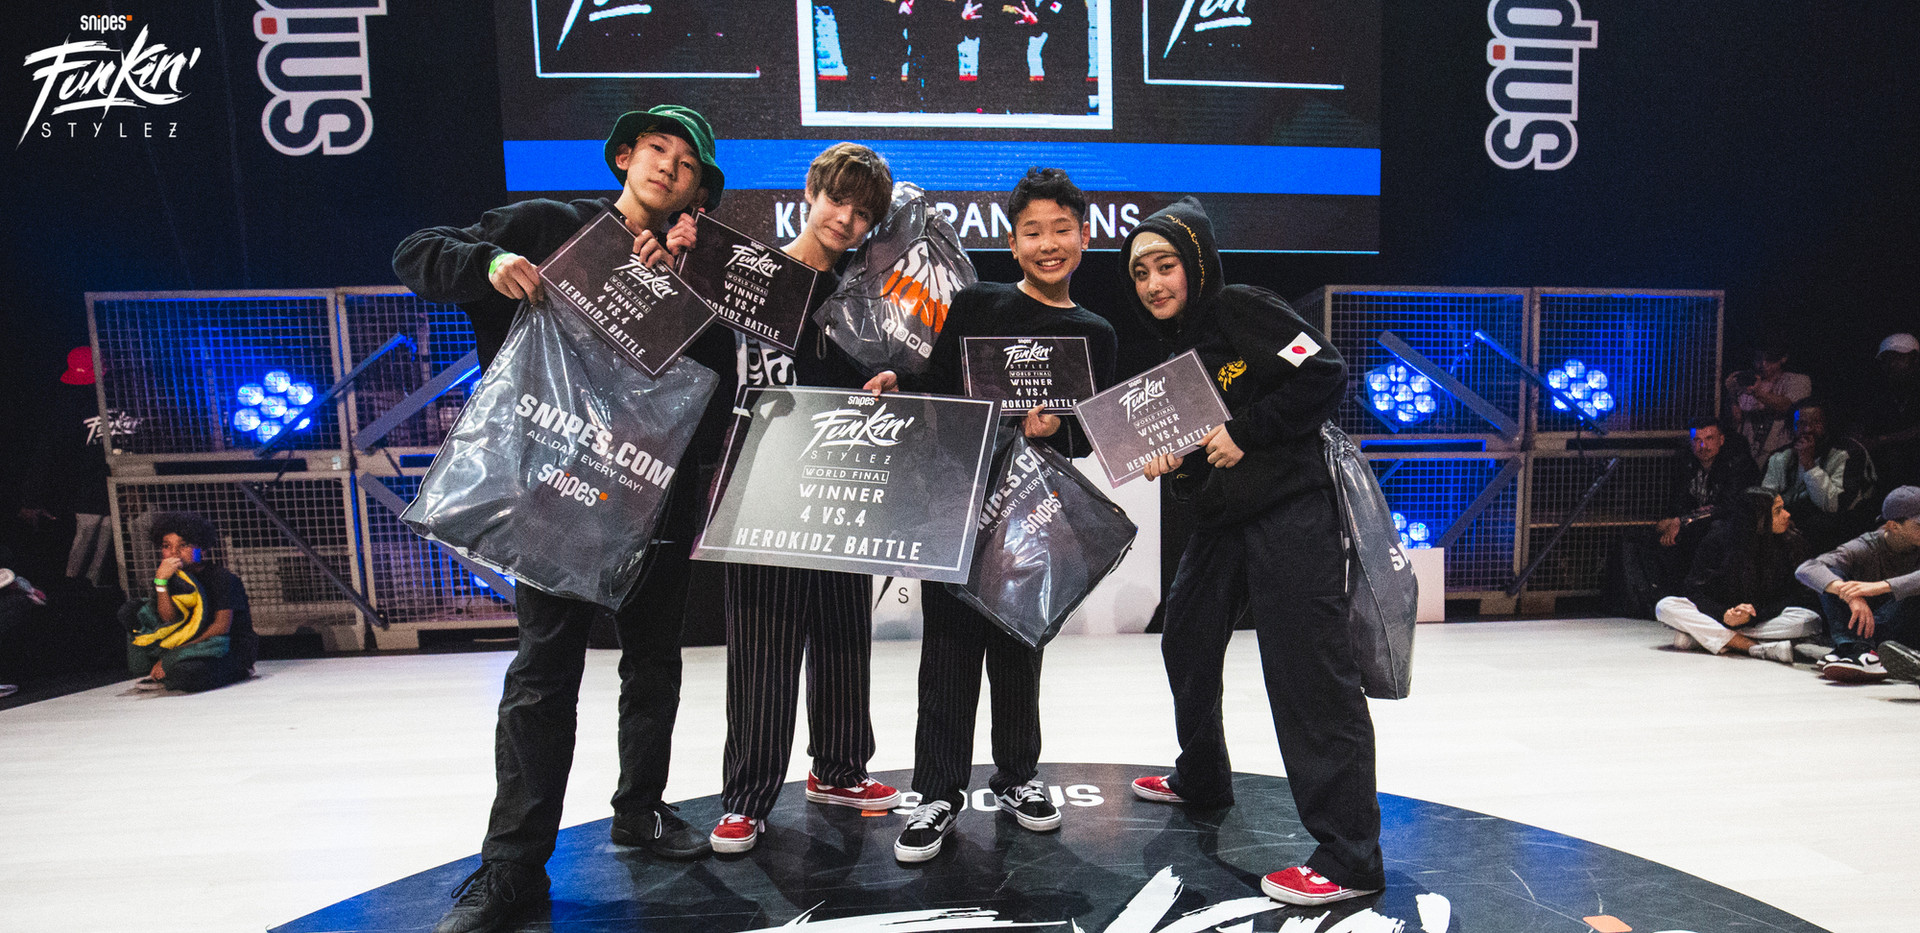 Team Japan Winner Kidz Team Battle